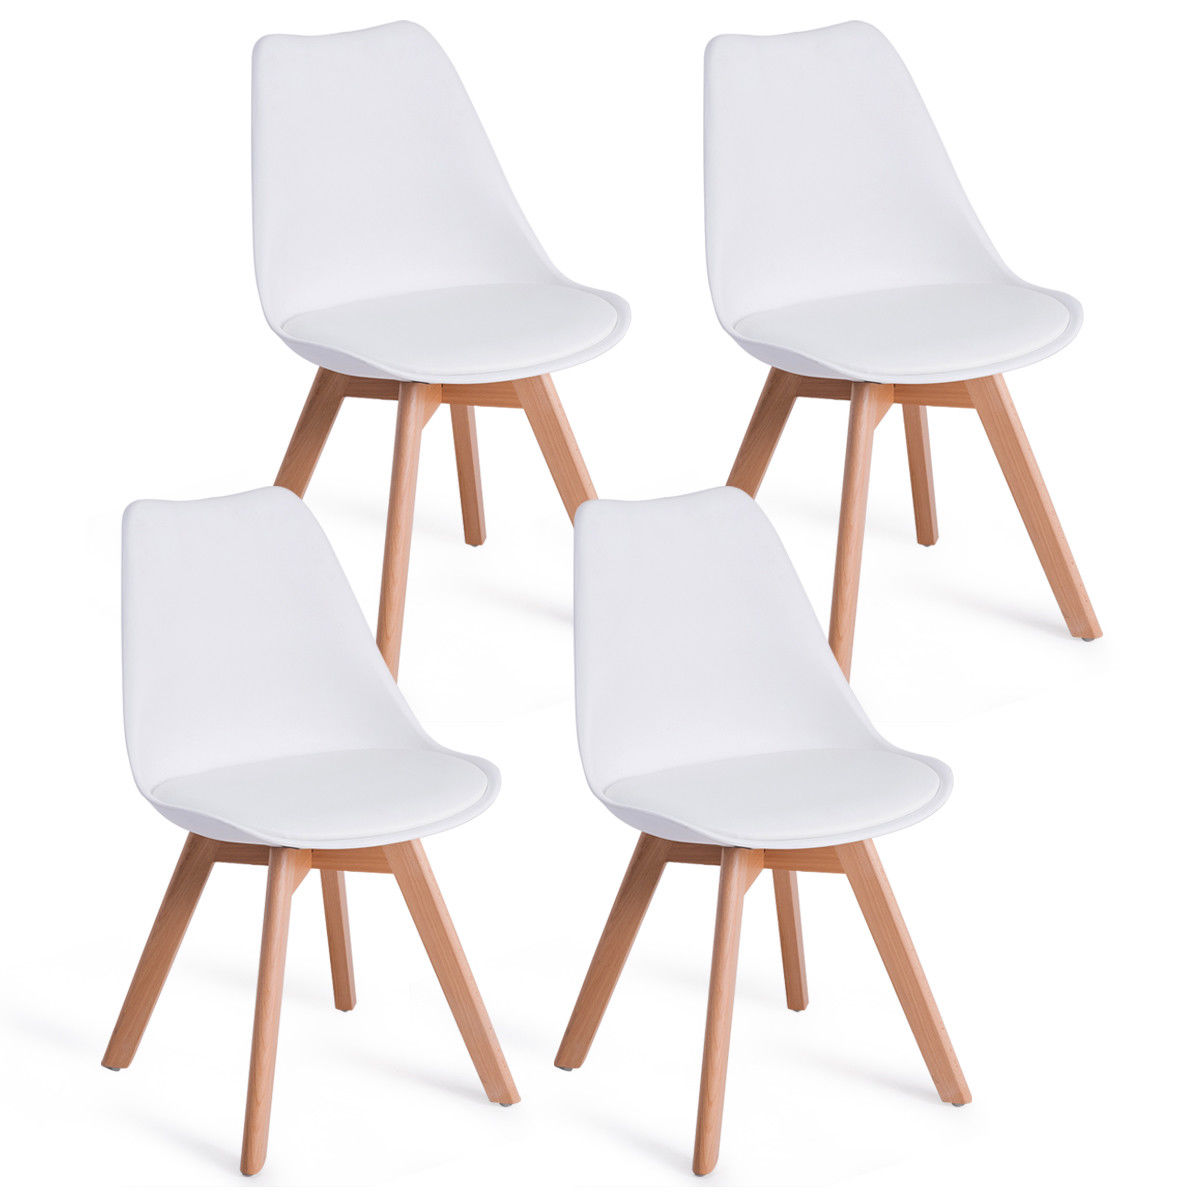 Giantex Set Of 4pcs Mid Century Modern Style Dining Side Chair Upholstered Seat Wood Legs White Dining Chairs HW57081 mid century presidential solid oak wood dining chair armchair upholstery seat dining room furniture modern arm chair for home